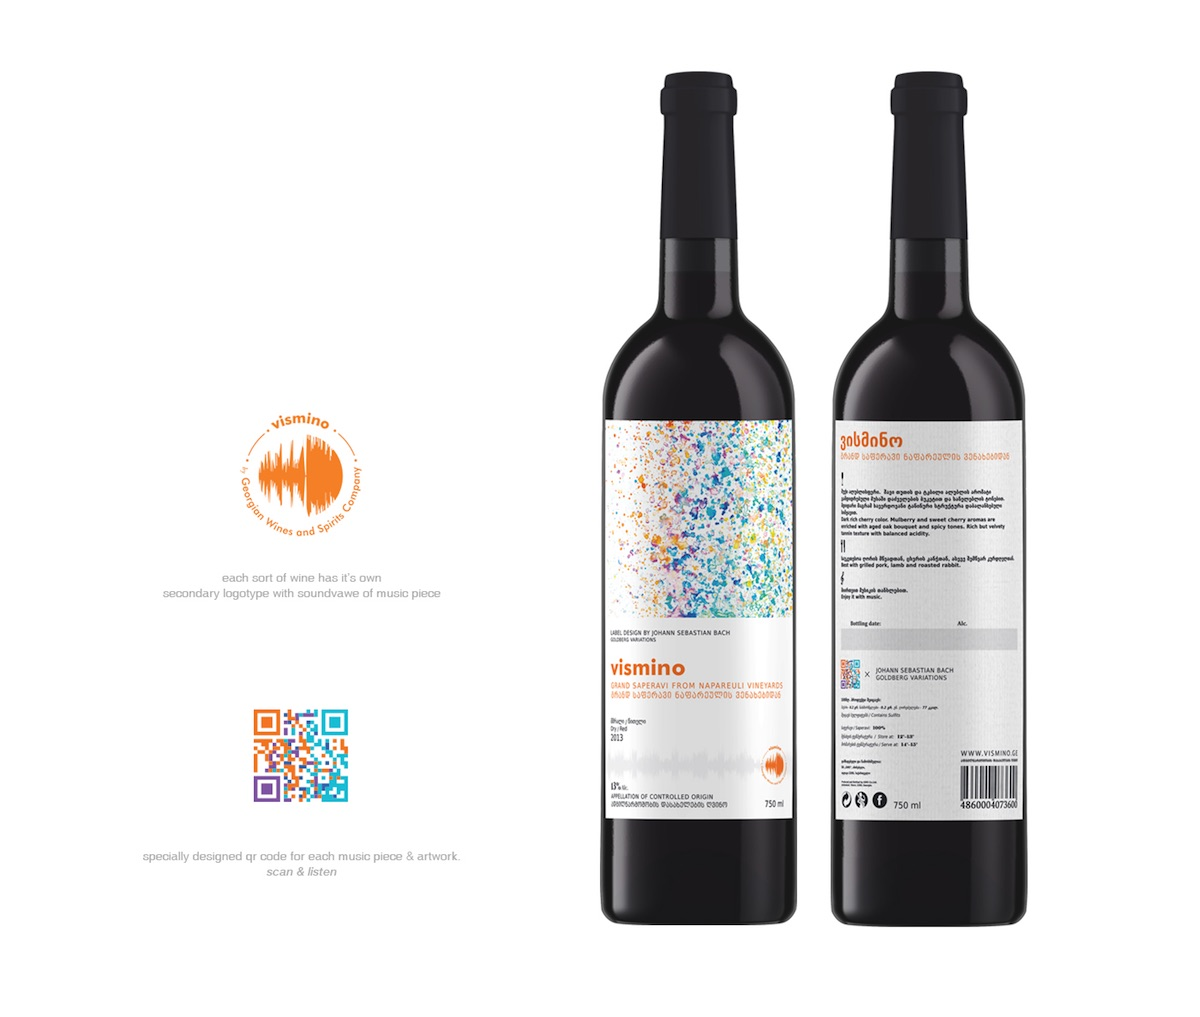 vismino wine label packaging